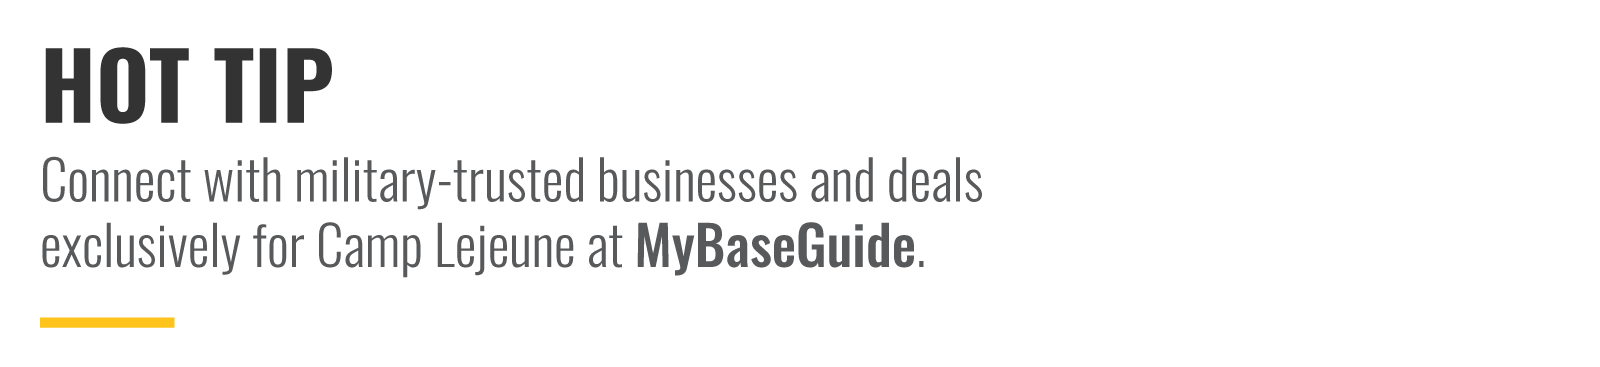 Connect with military-trusted businesses and deals exclusively on MyBaseGuide.com